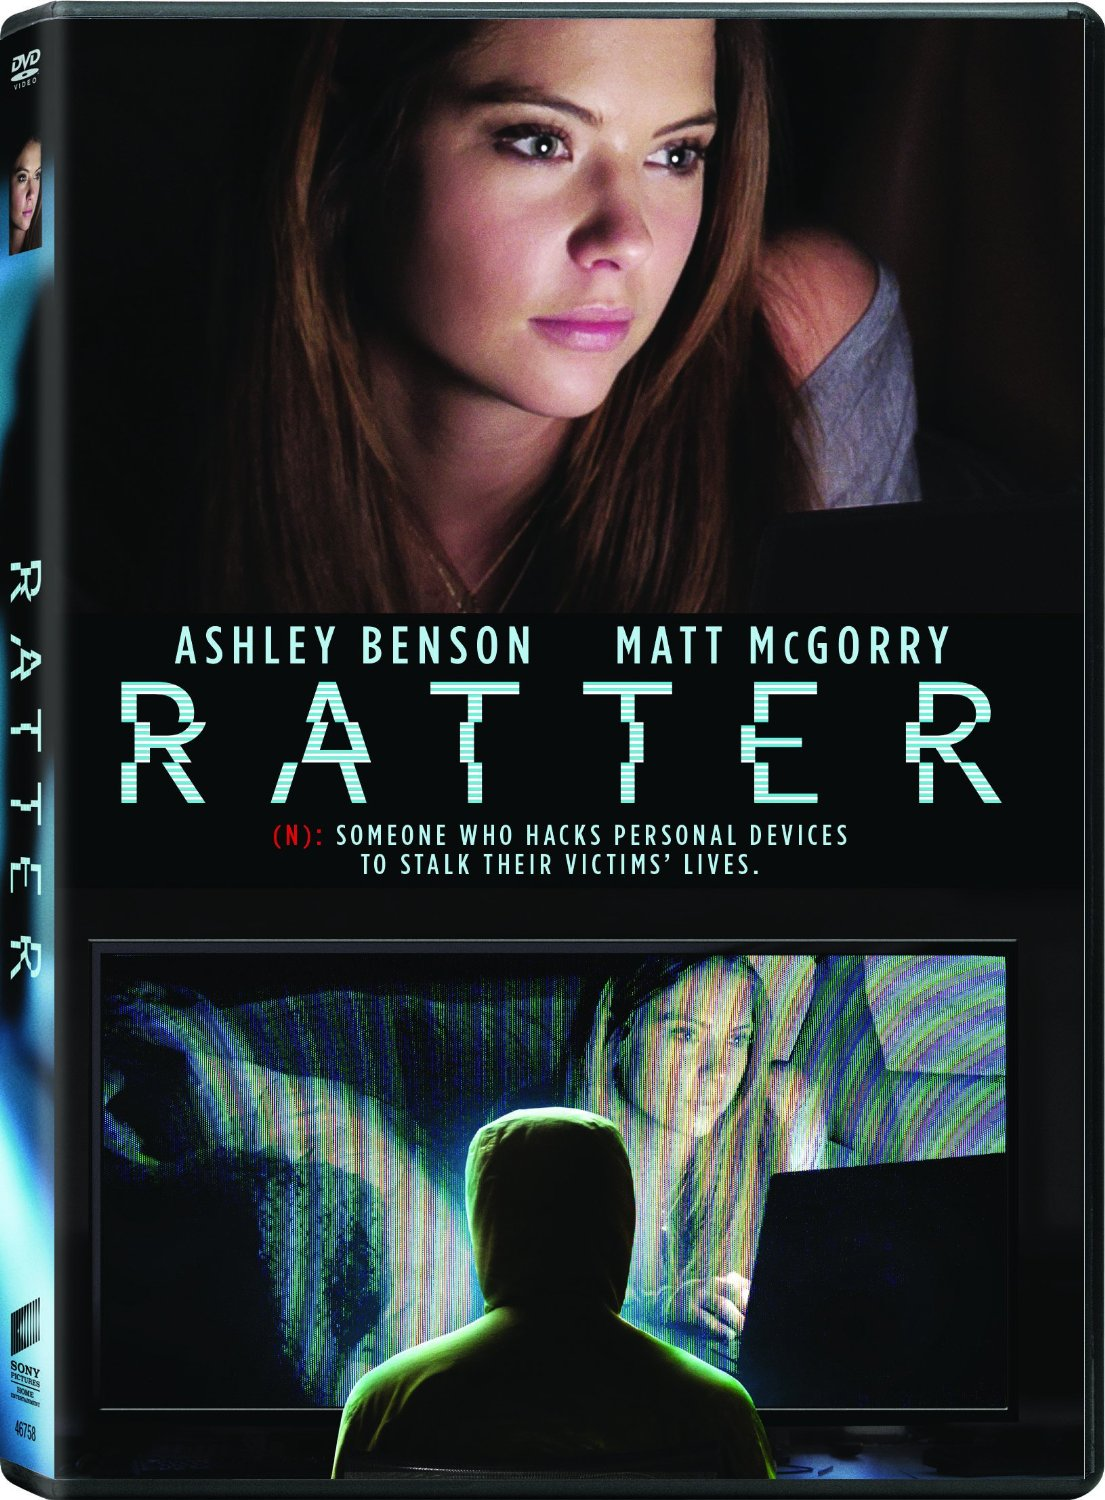 Watch the ratter trailer